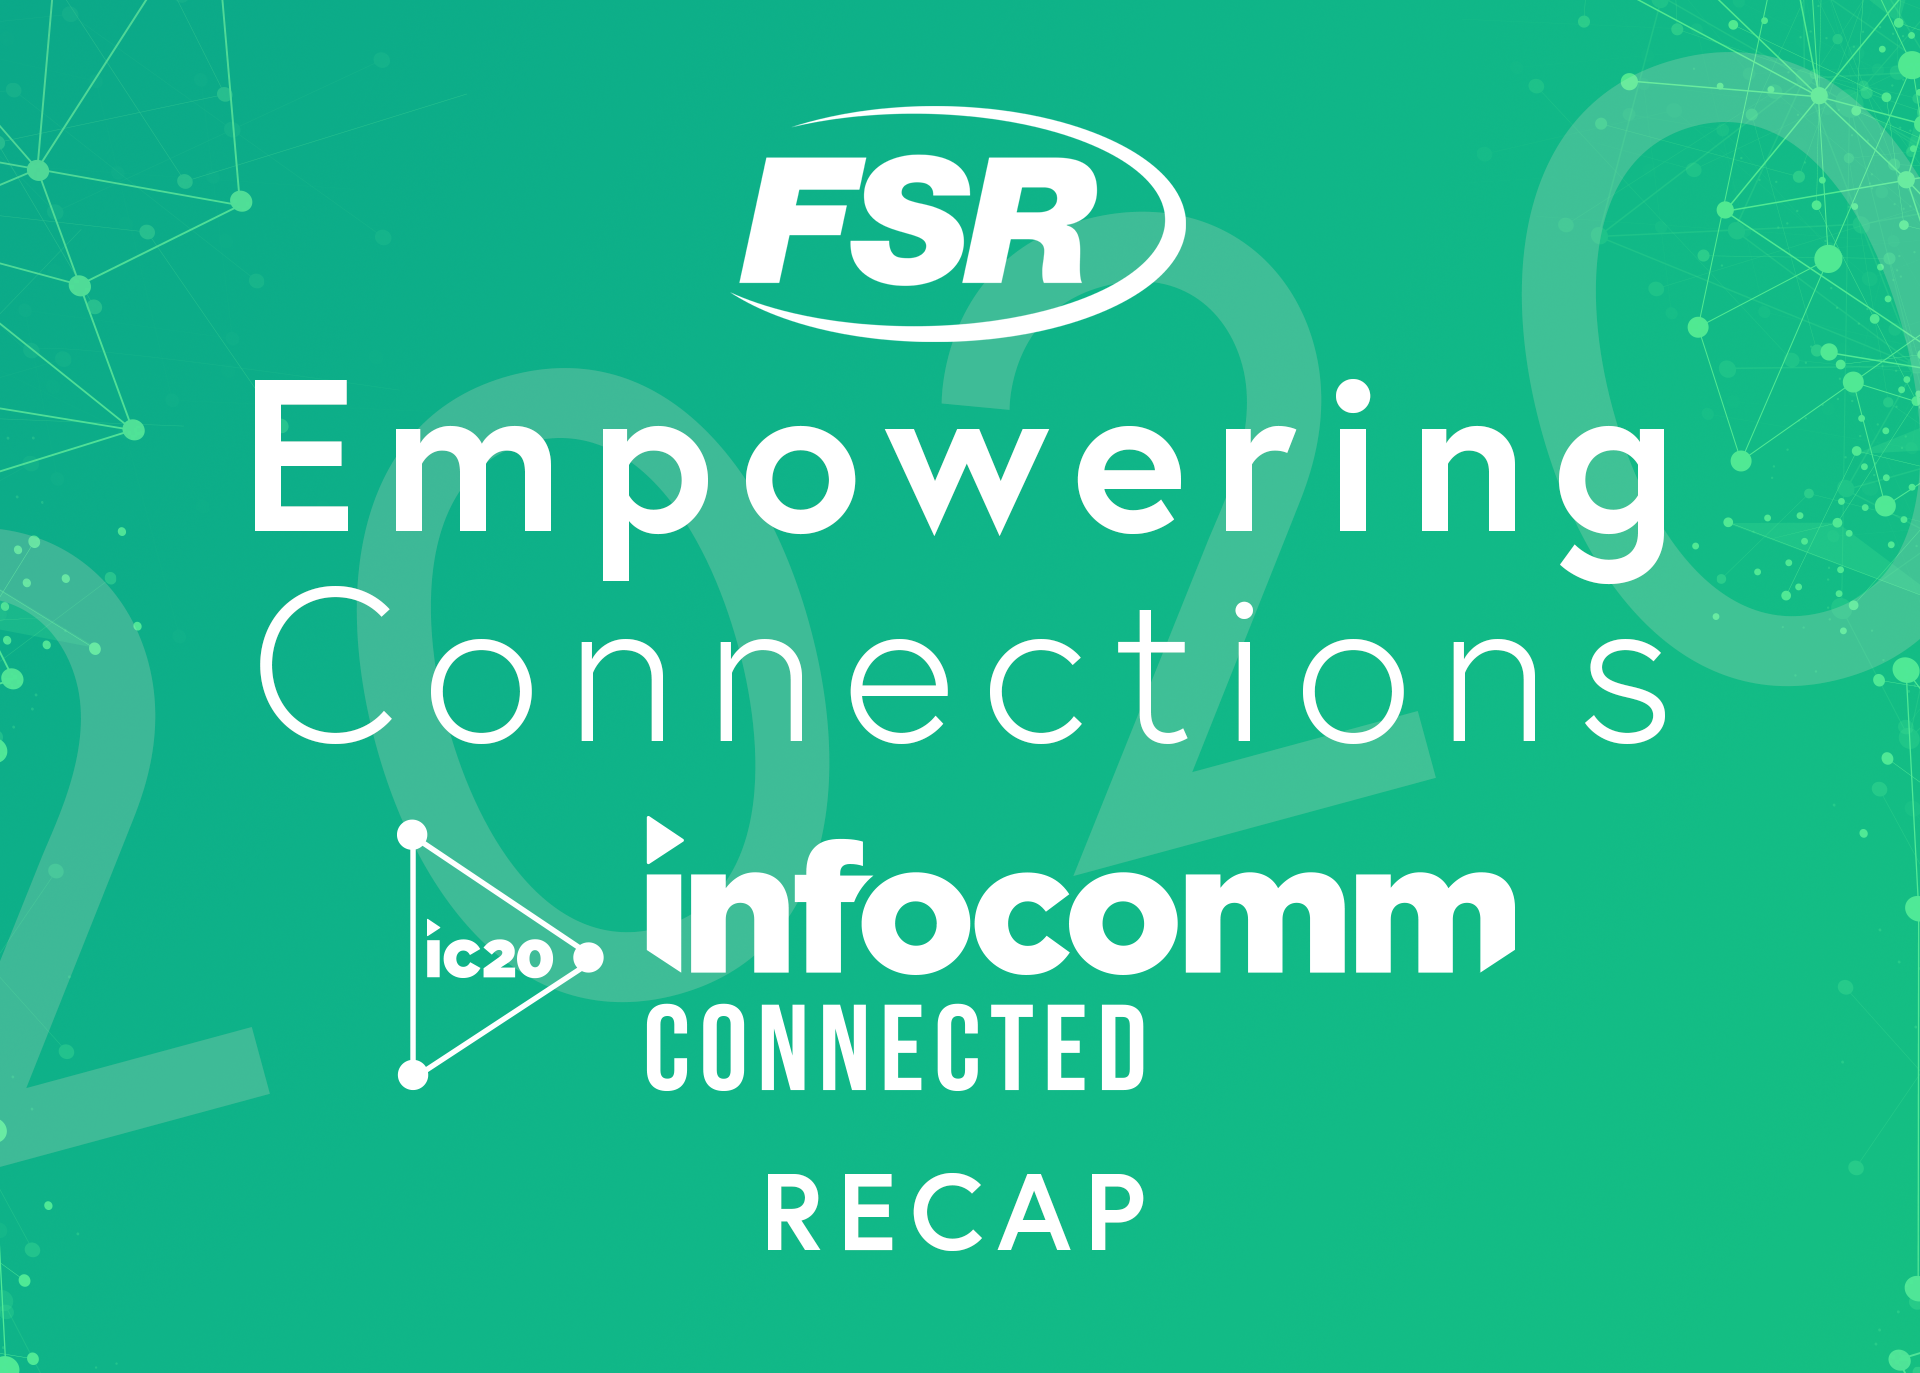 Infocomm Connected